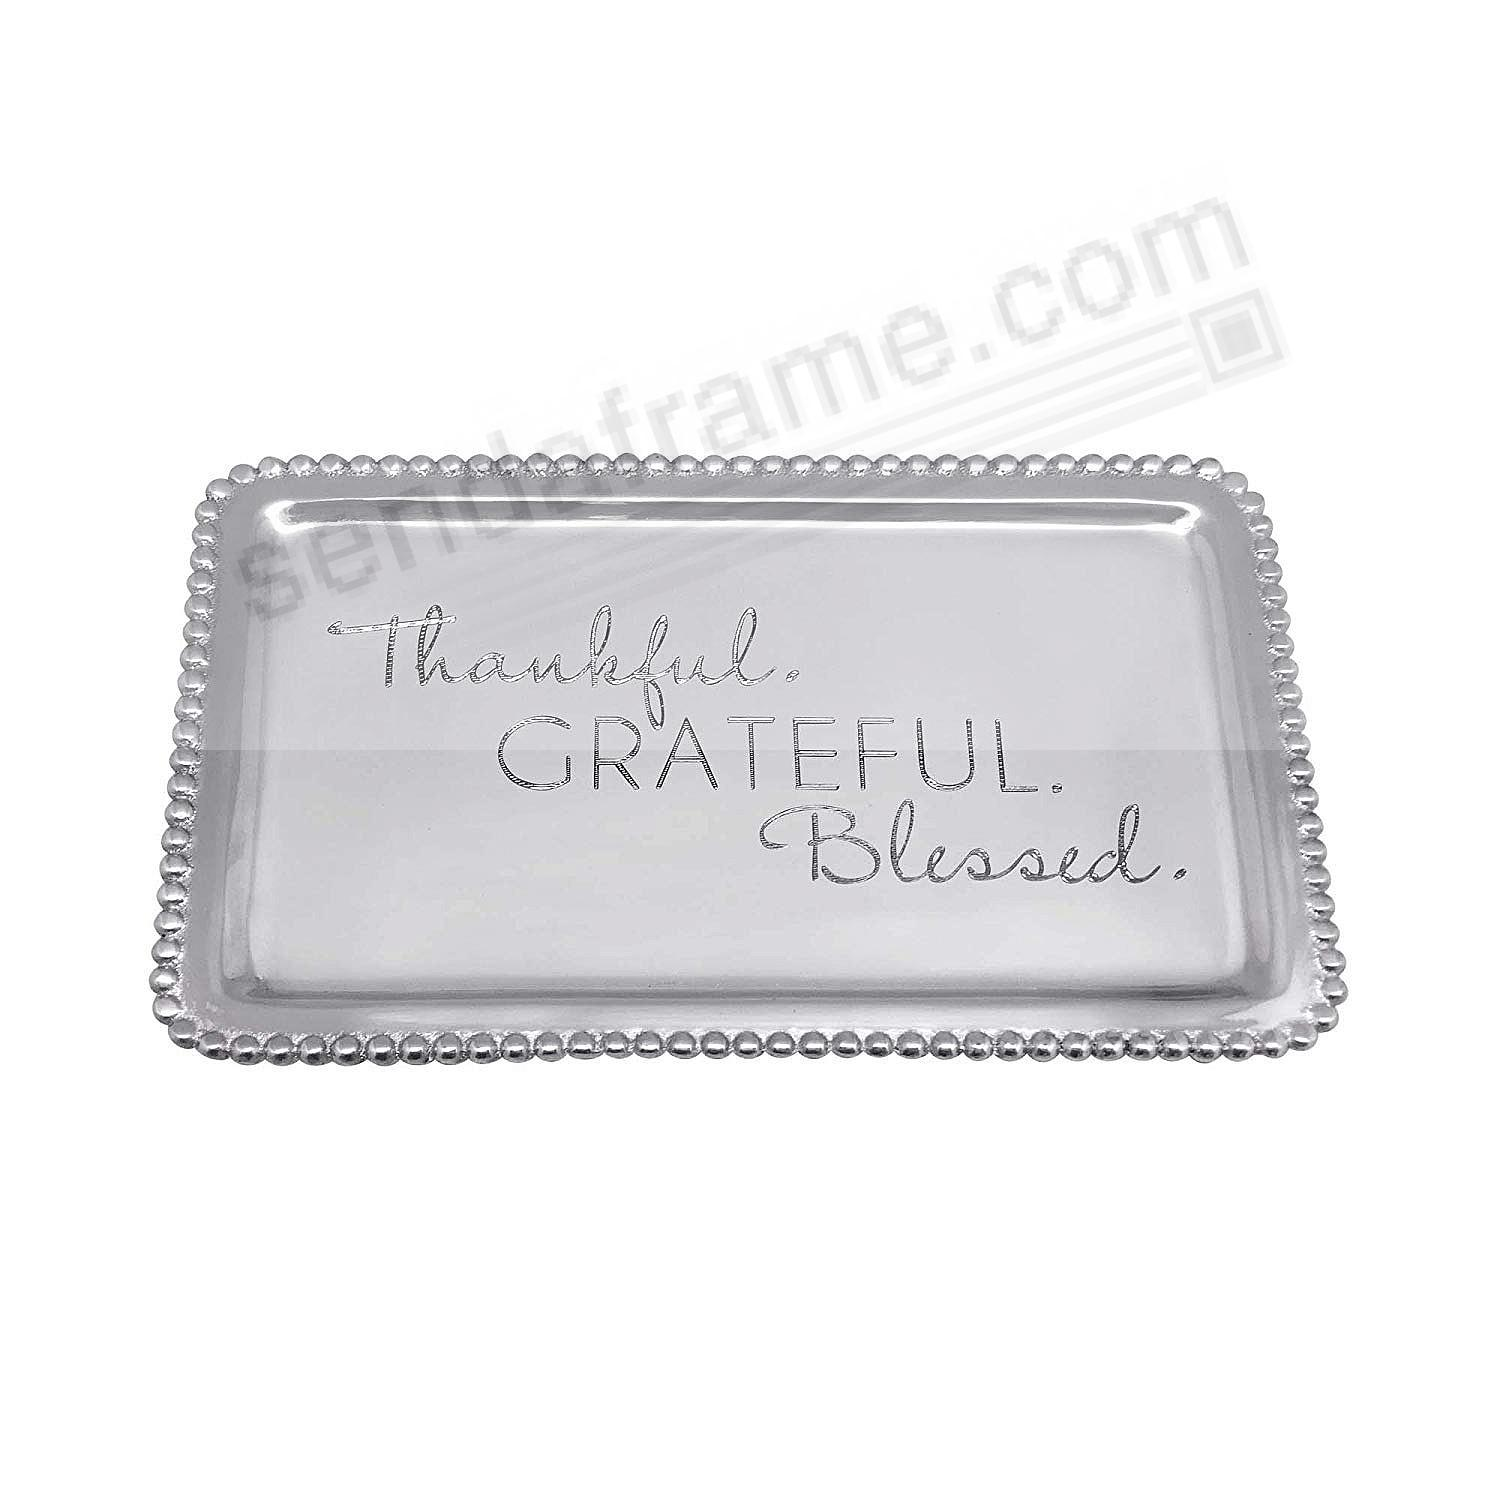 THANKFUL-GRATEFUL-BLESSED BEADED BUFFET TRAY crafted by Mariposa®